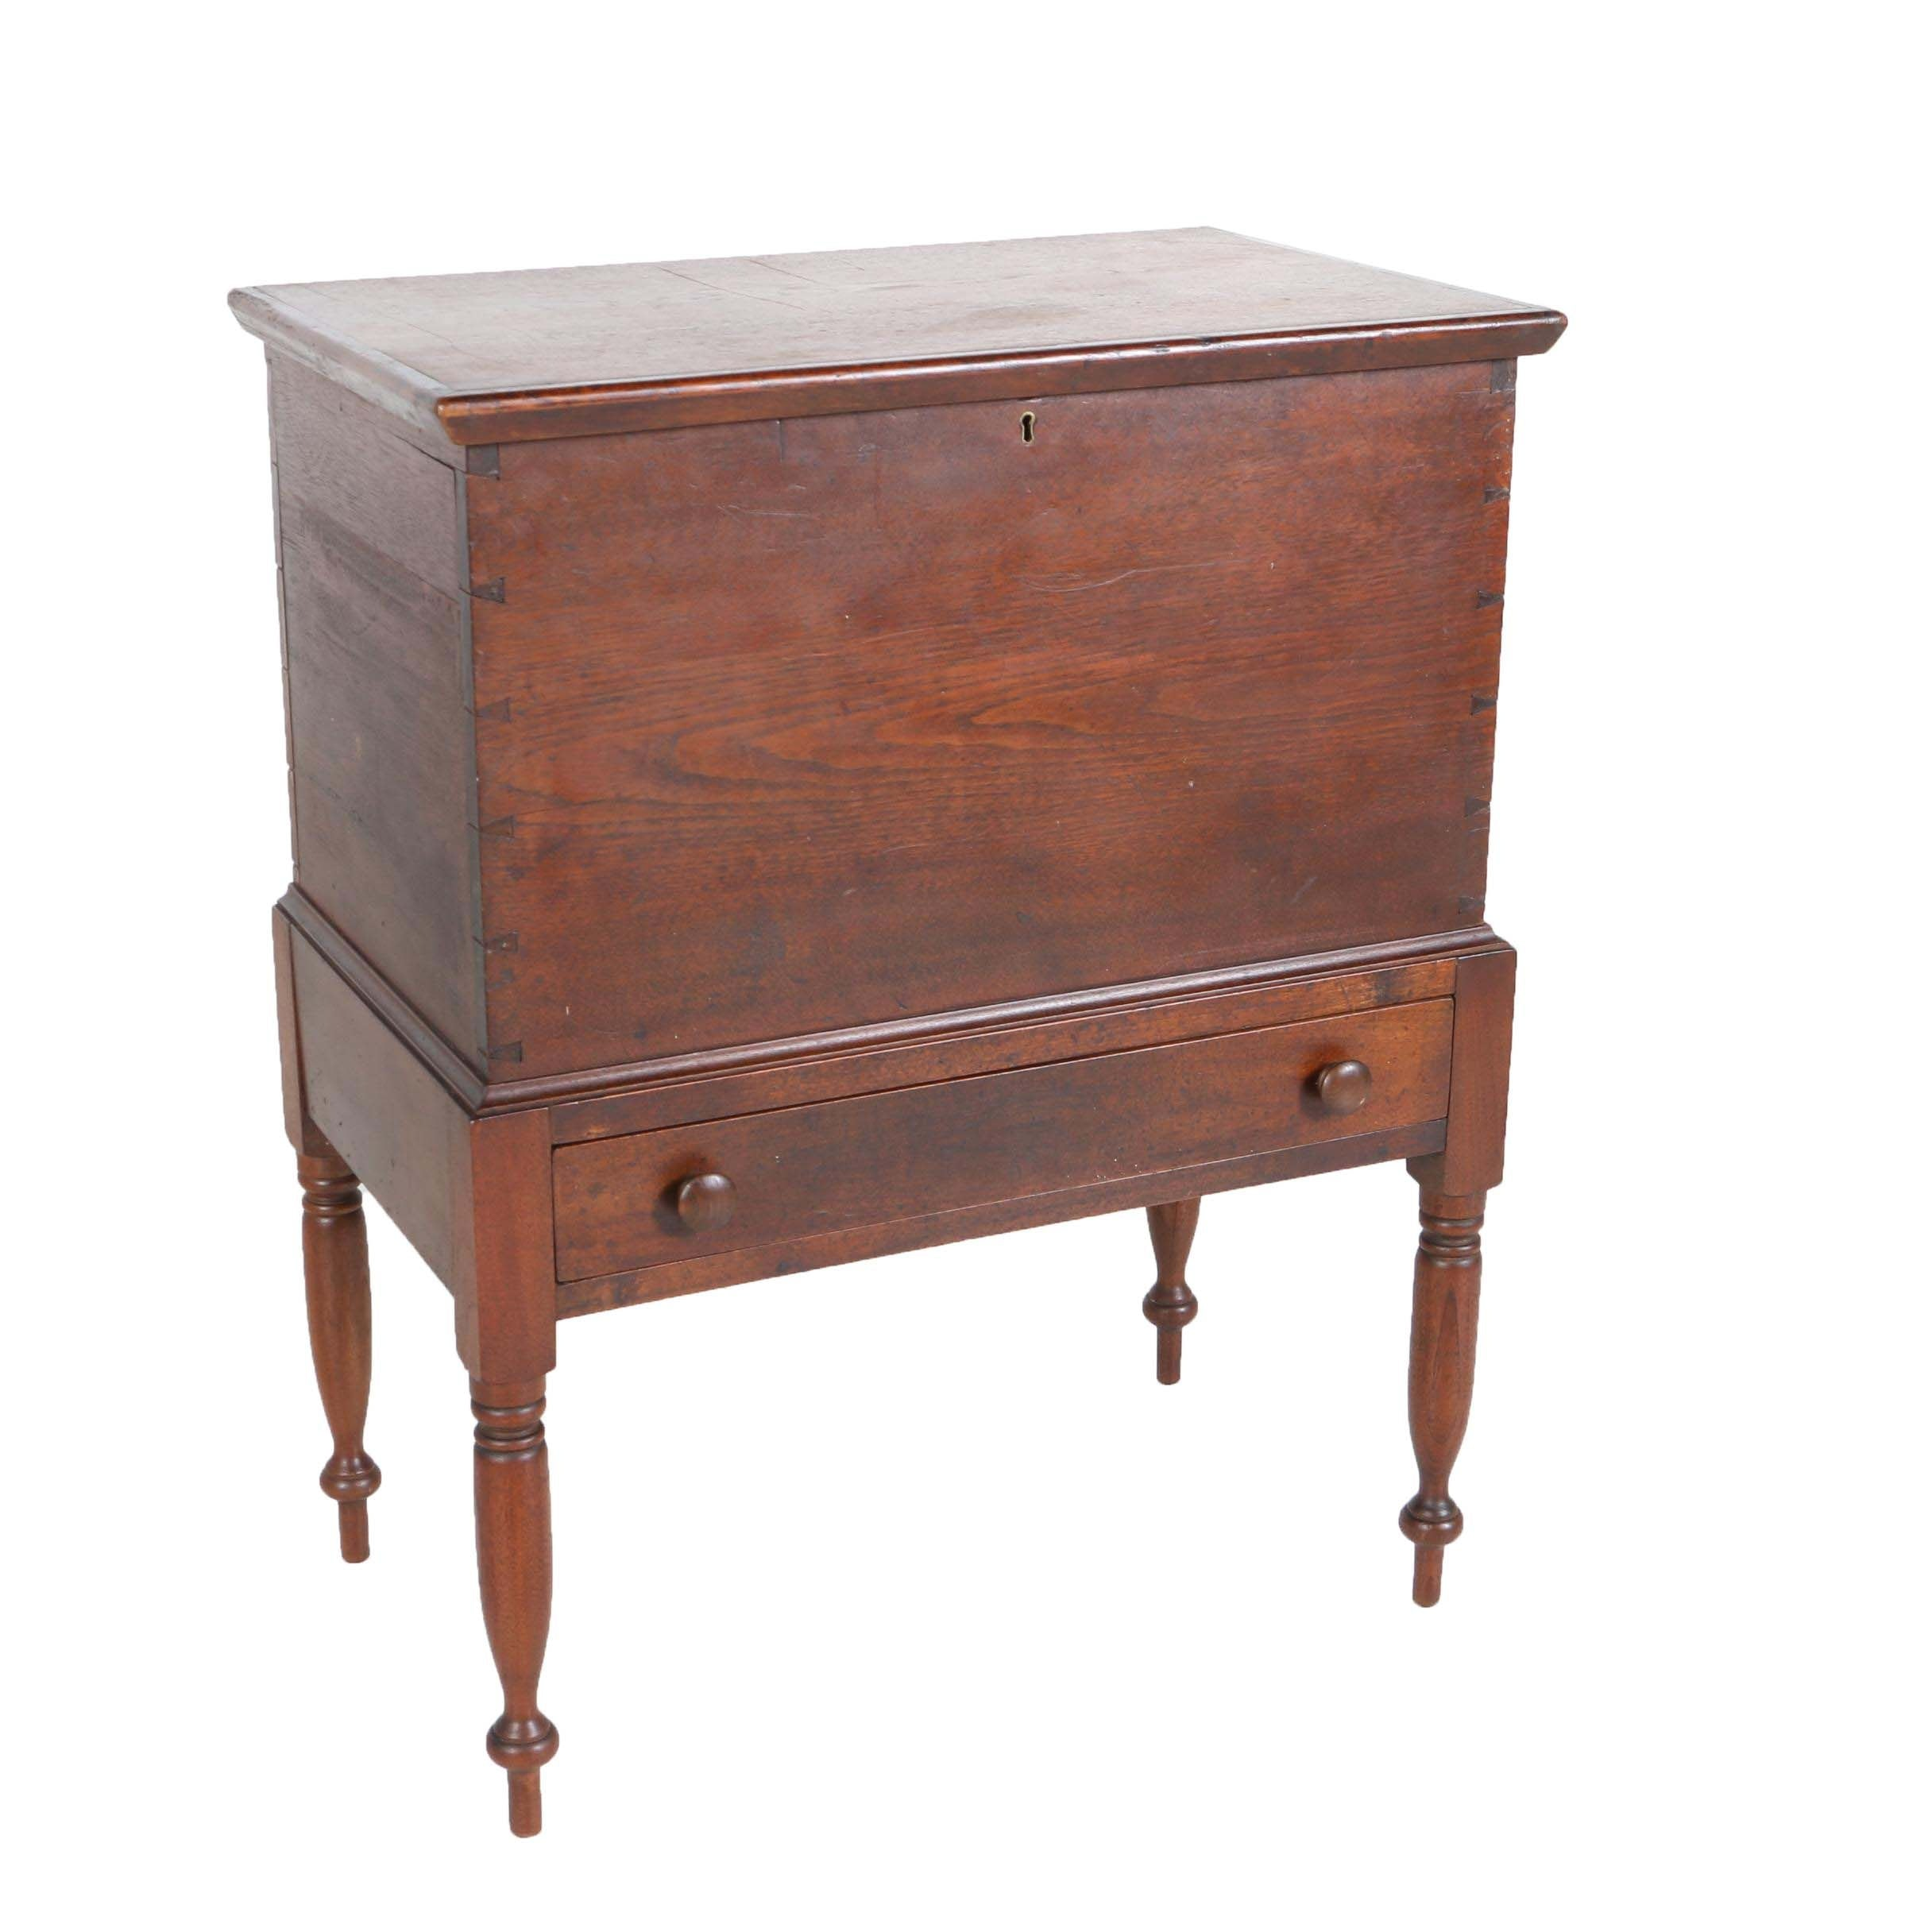 Southern Late Federal Walnut Sugar Chest-on-Frame, Circa 1820-1840 and Later